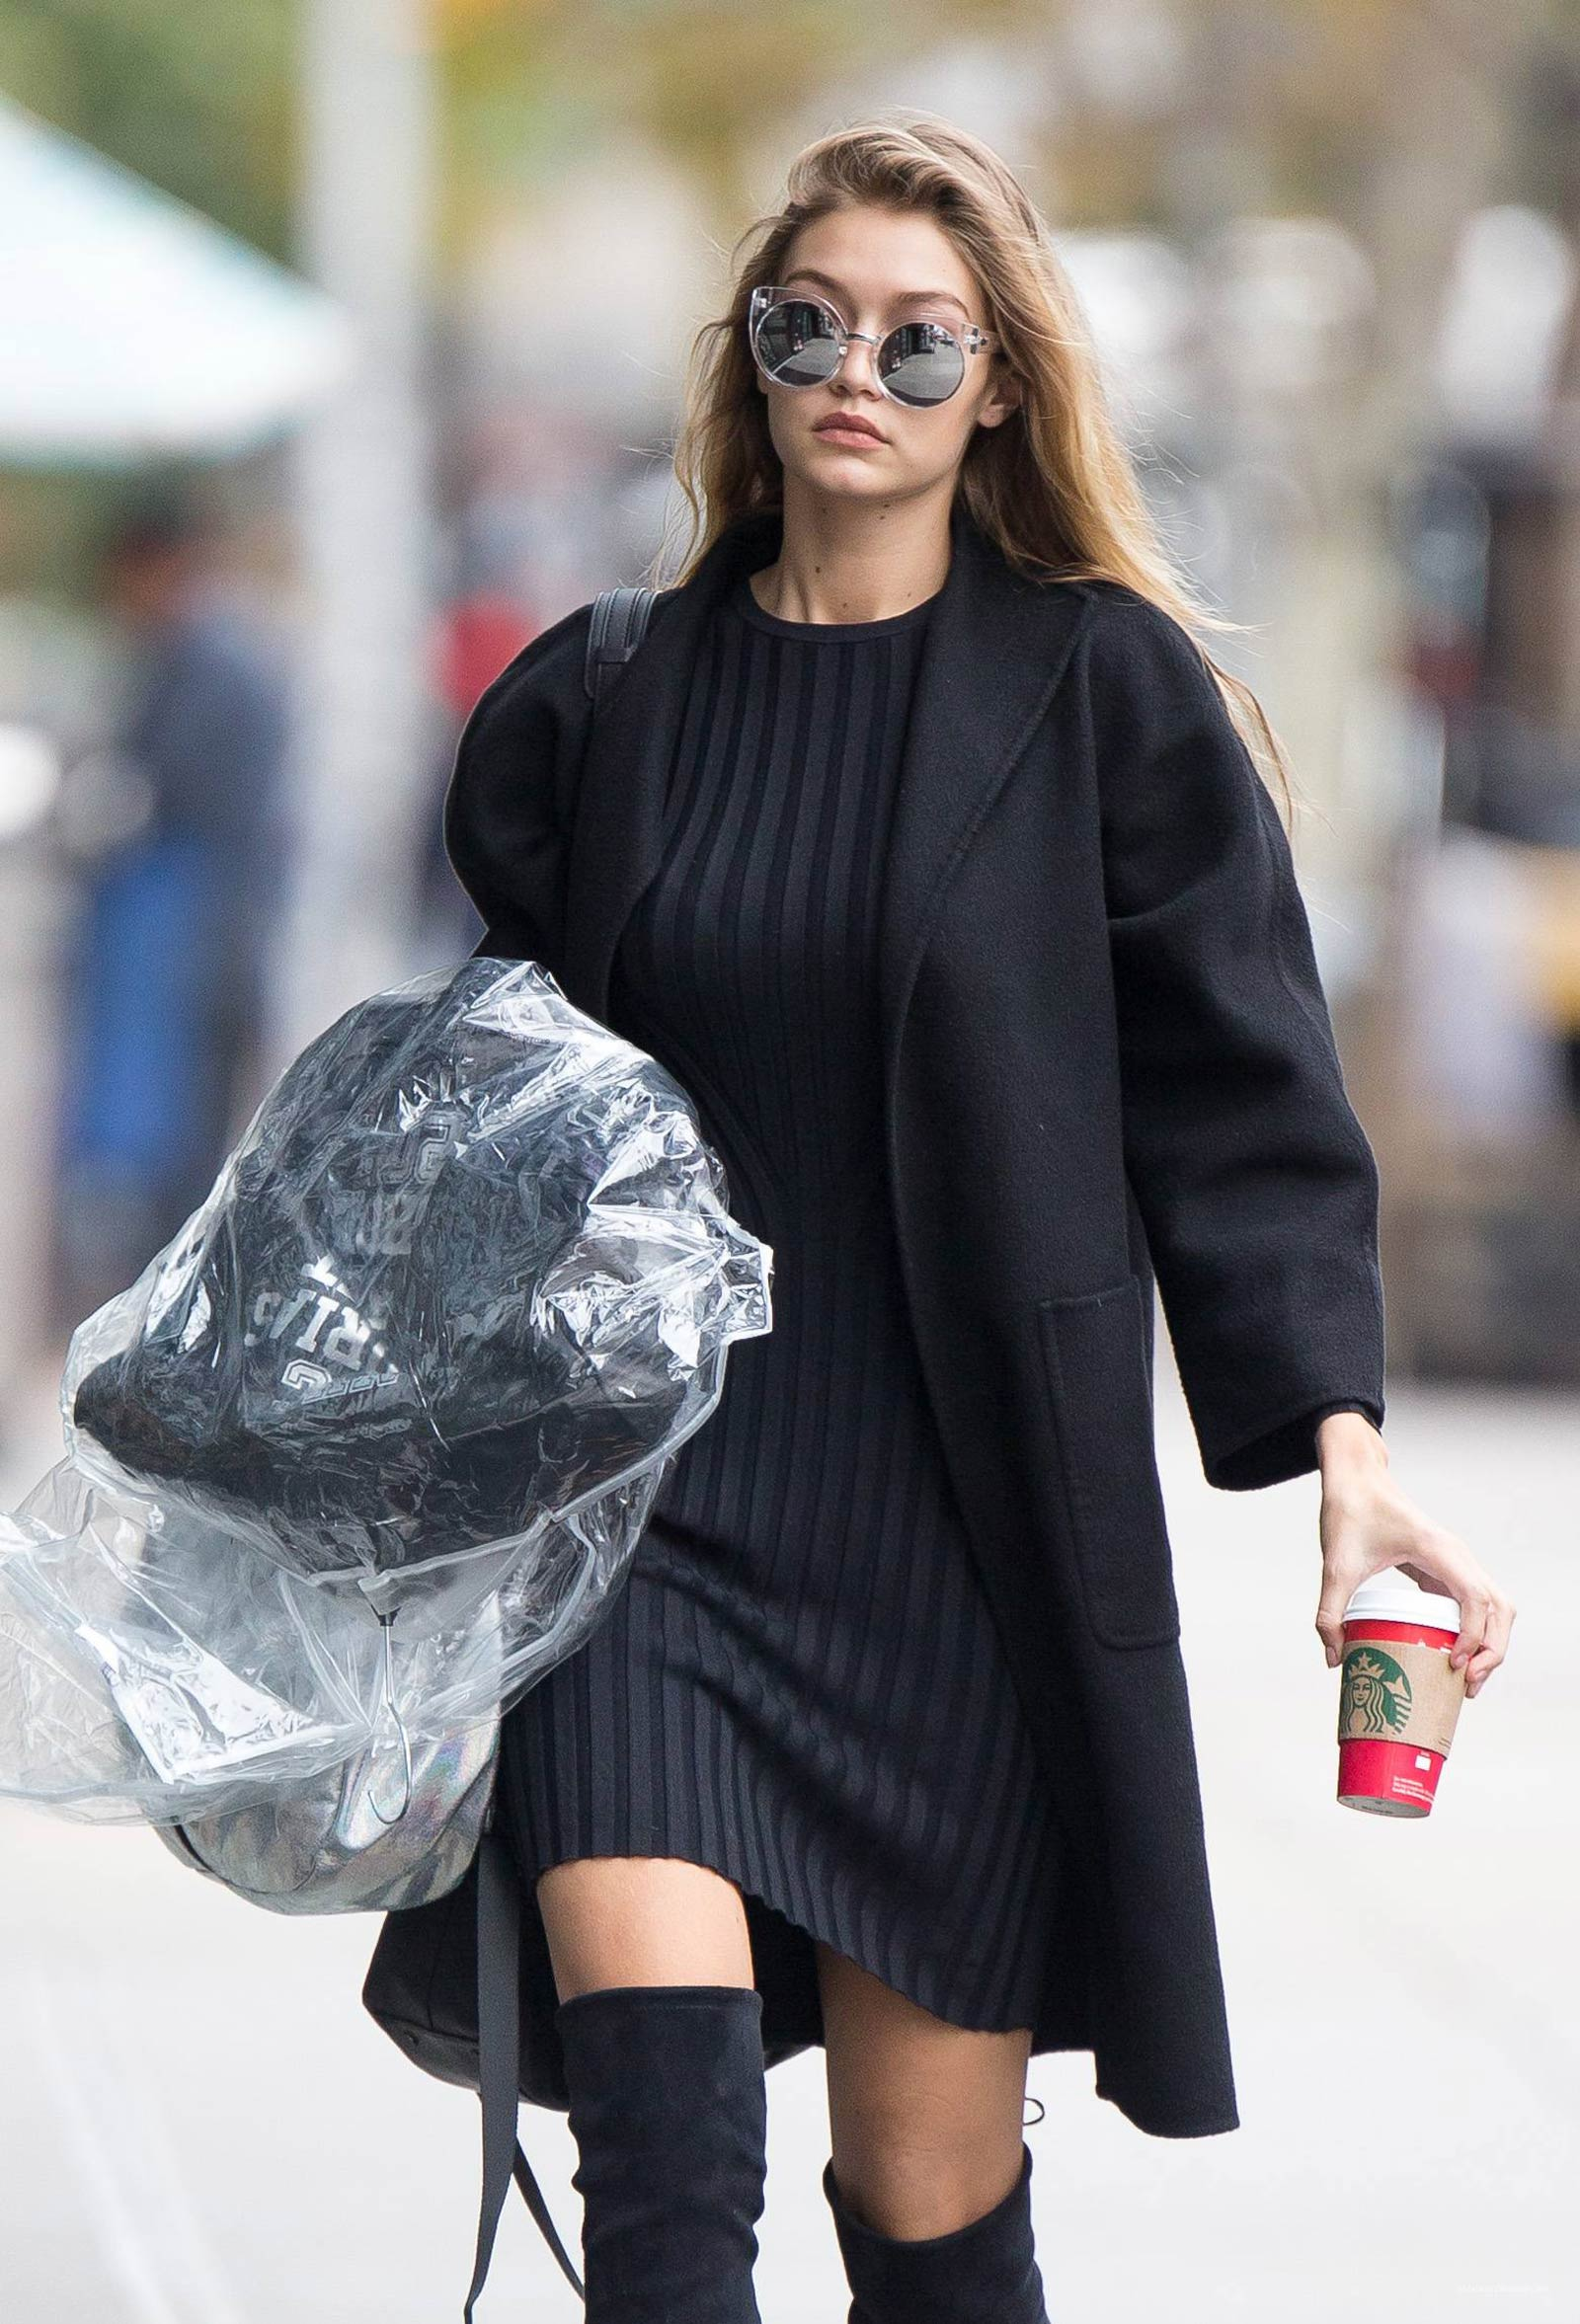 Gigi Hadid spotted departing her residence in